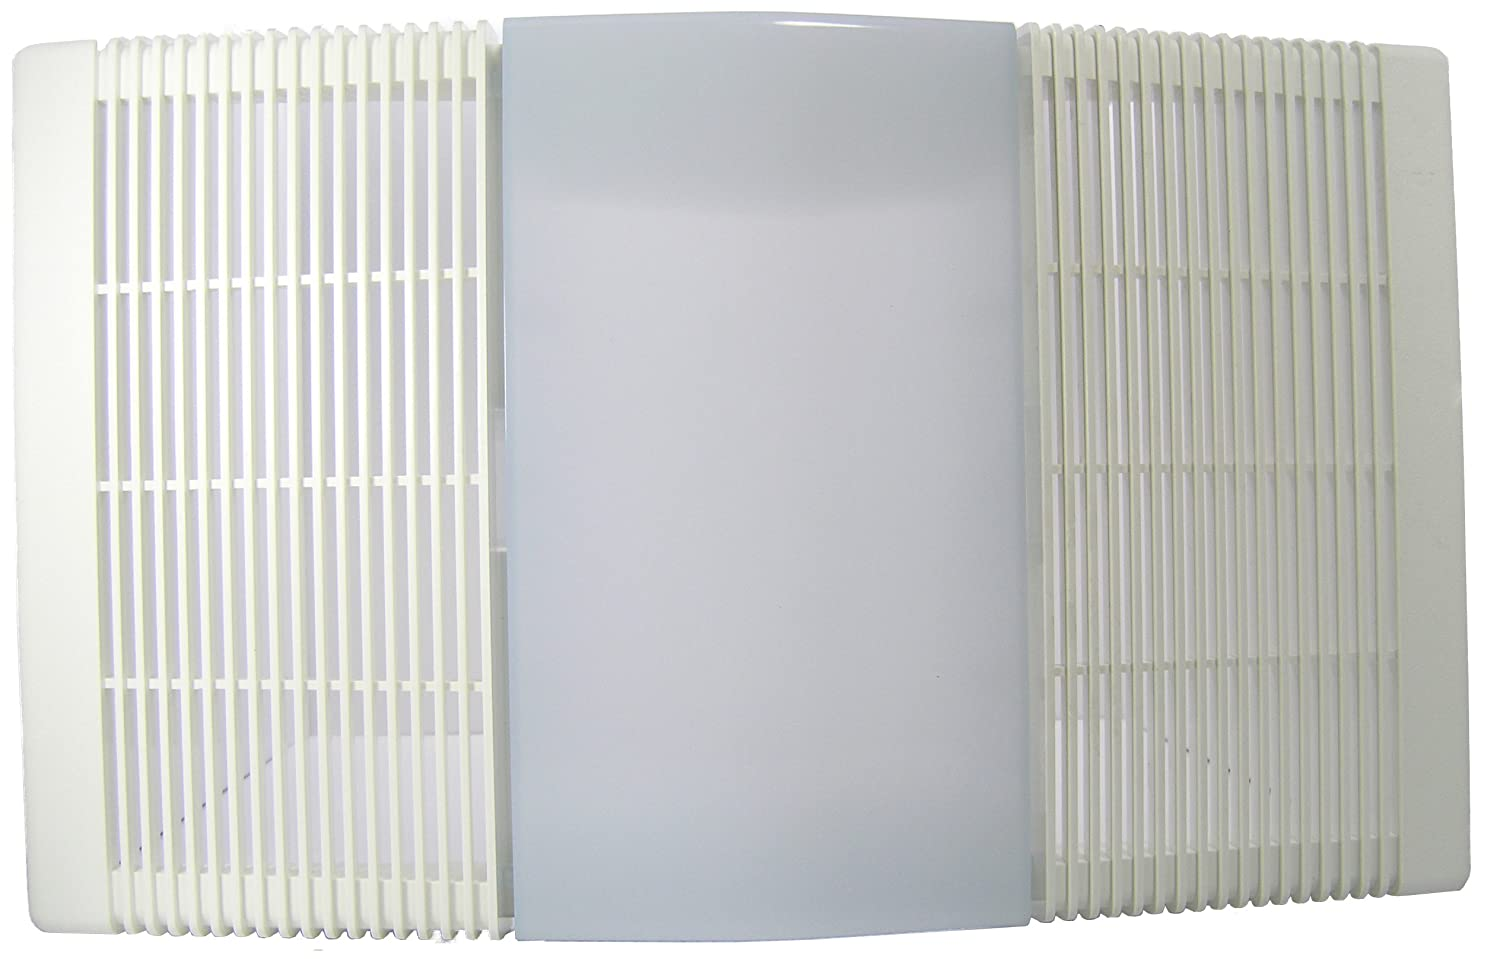 Broan Nutone 668rp Bathroom Fan Light: NuTone 89852000 Ceiling Heater Grille And Lens Ass , New